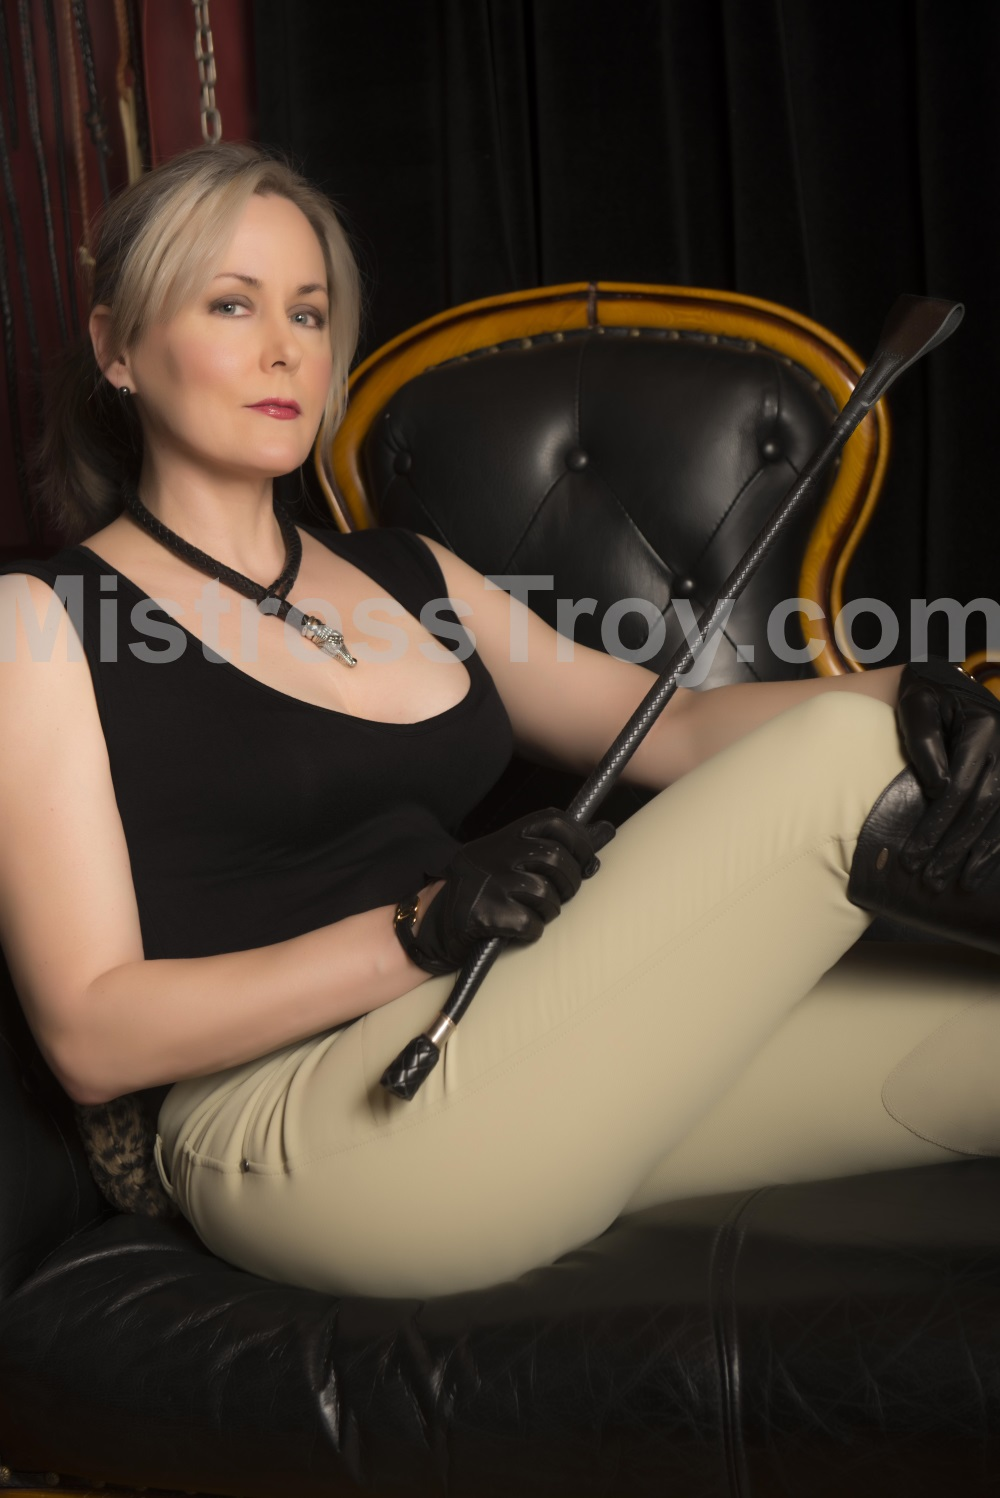 Mistress Troy, professional independent Dominatrix in New York City, NY